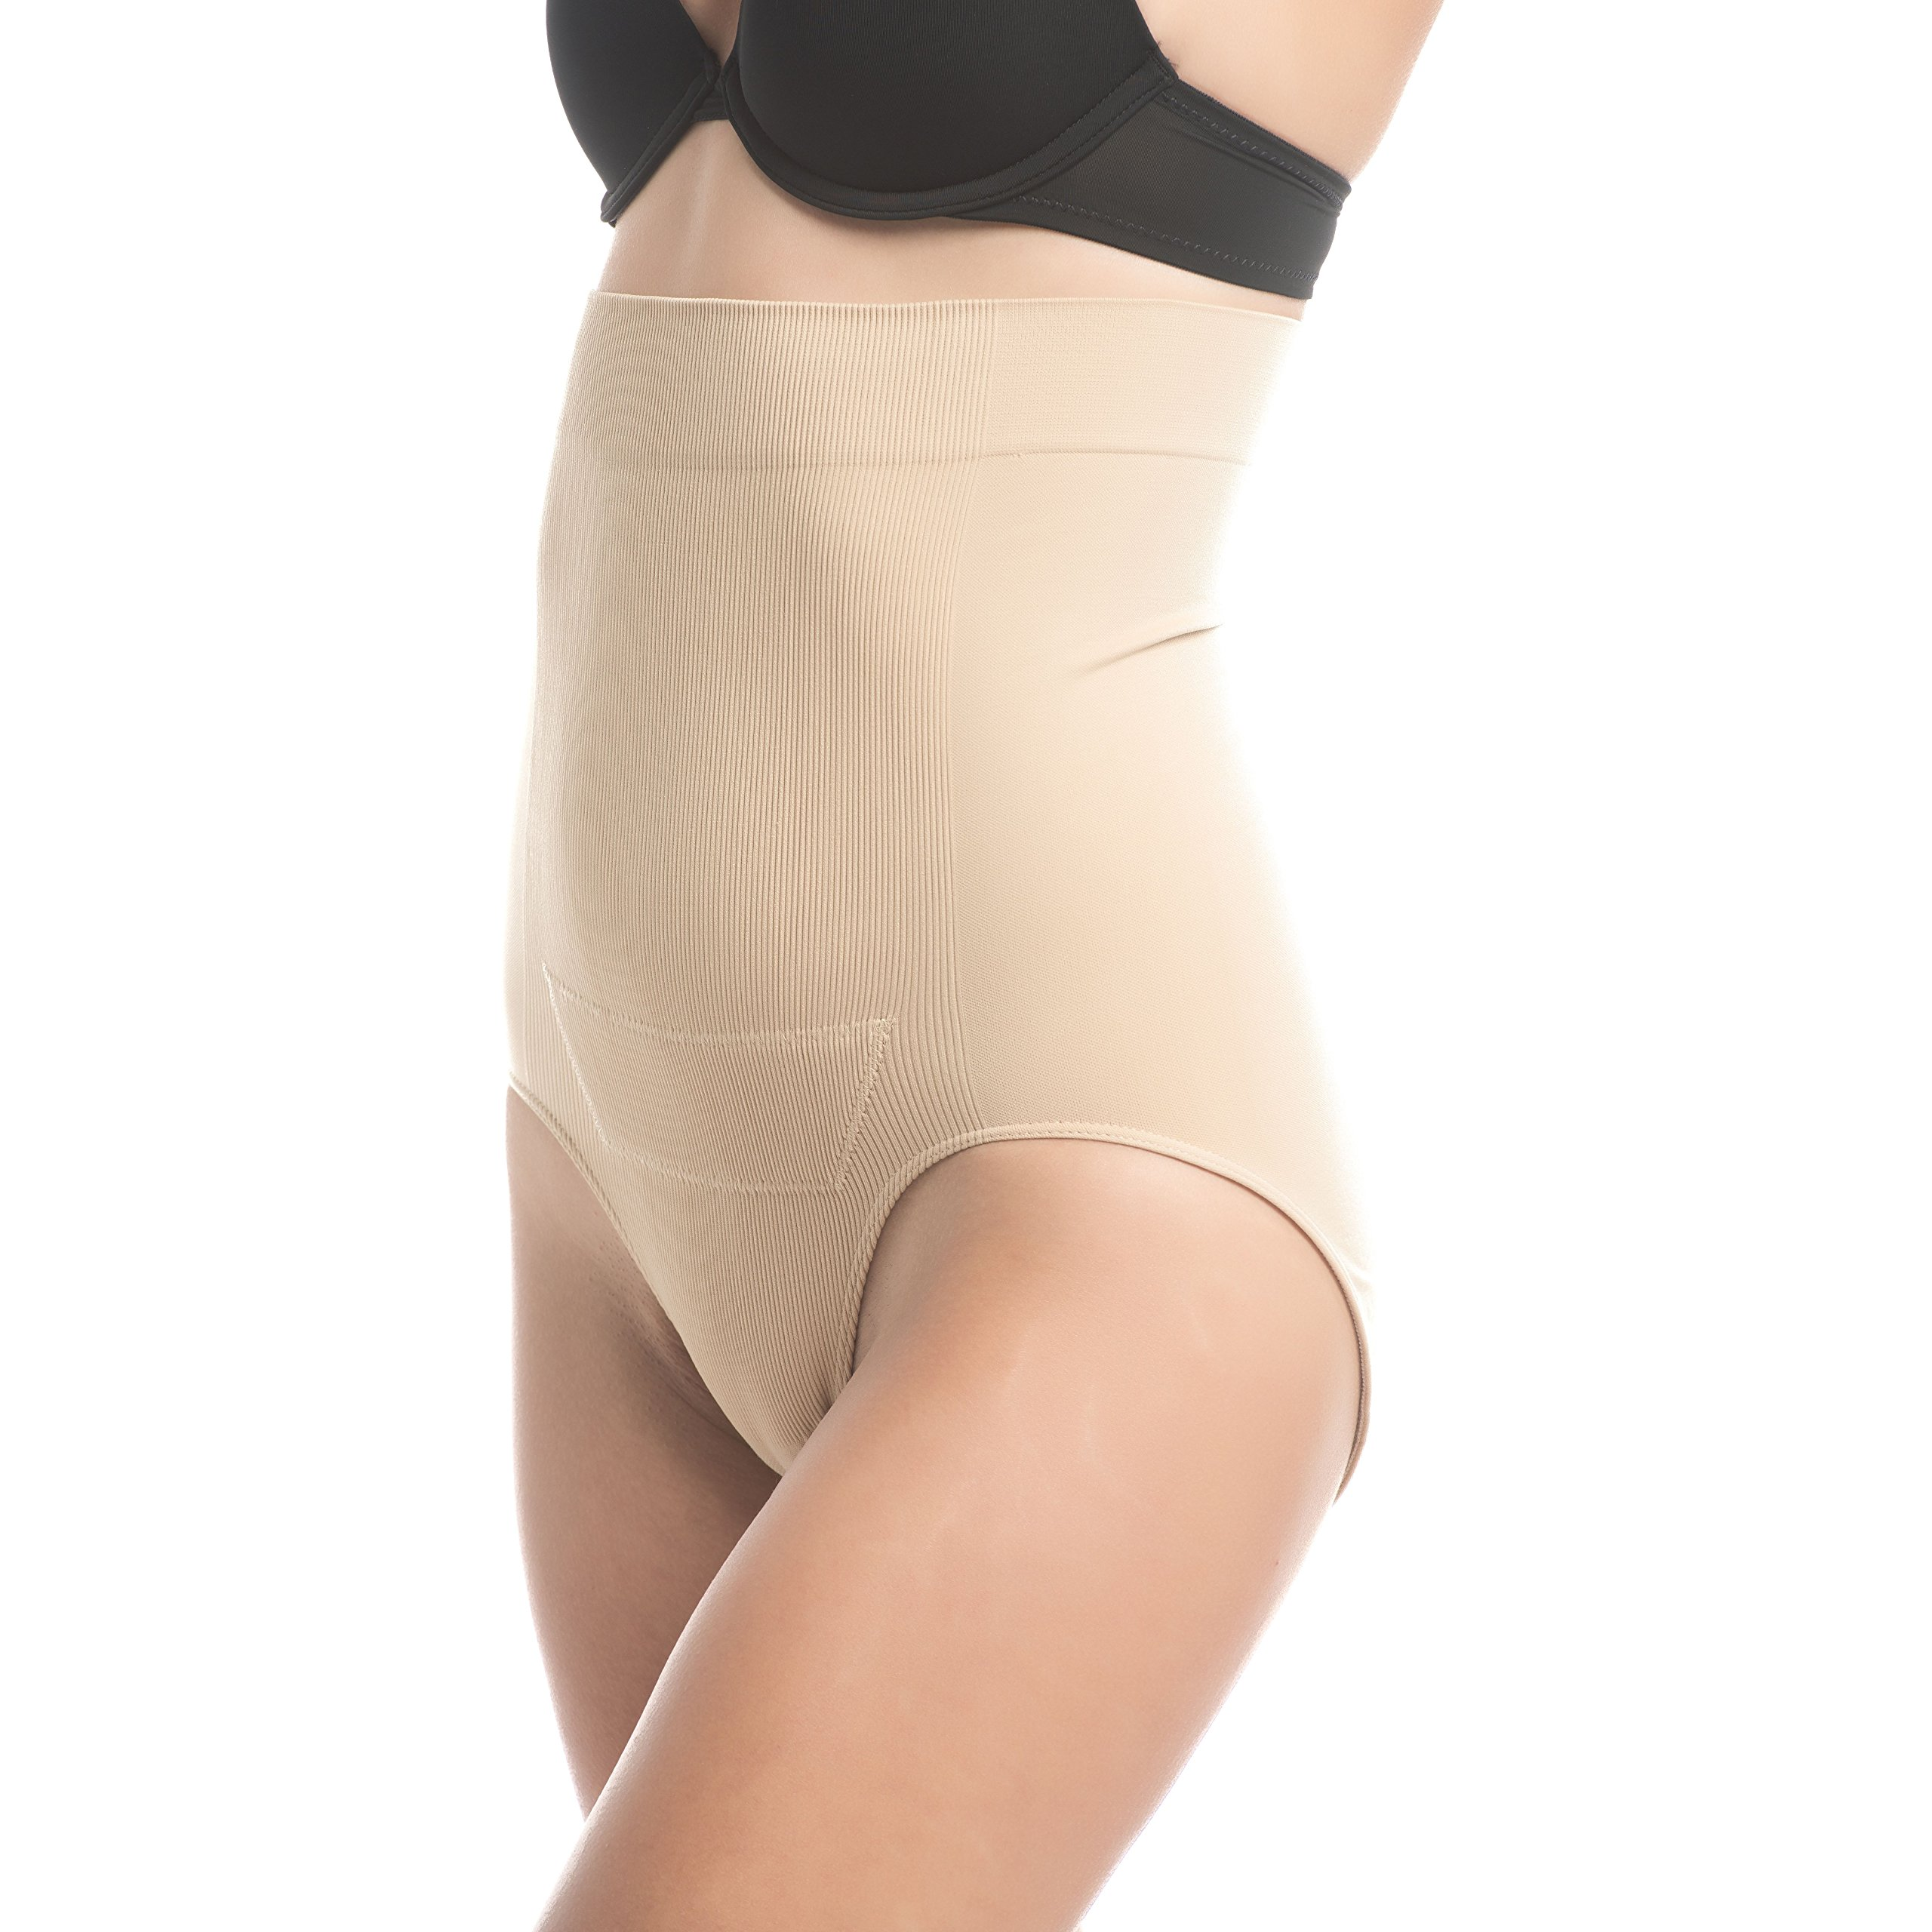 UpSpring C-Panty High Waist C-Section Support, Recovery & Slimming Panty with C-Section Scar Healing - OBGYN Recommended L/XL Nude